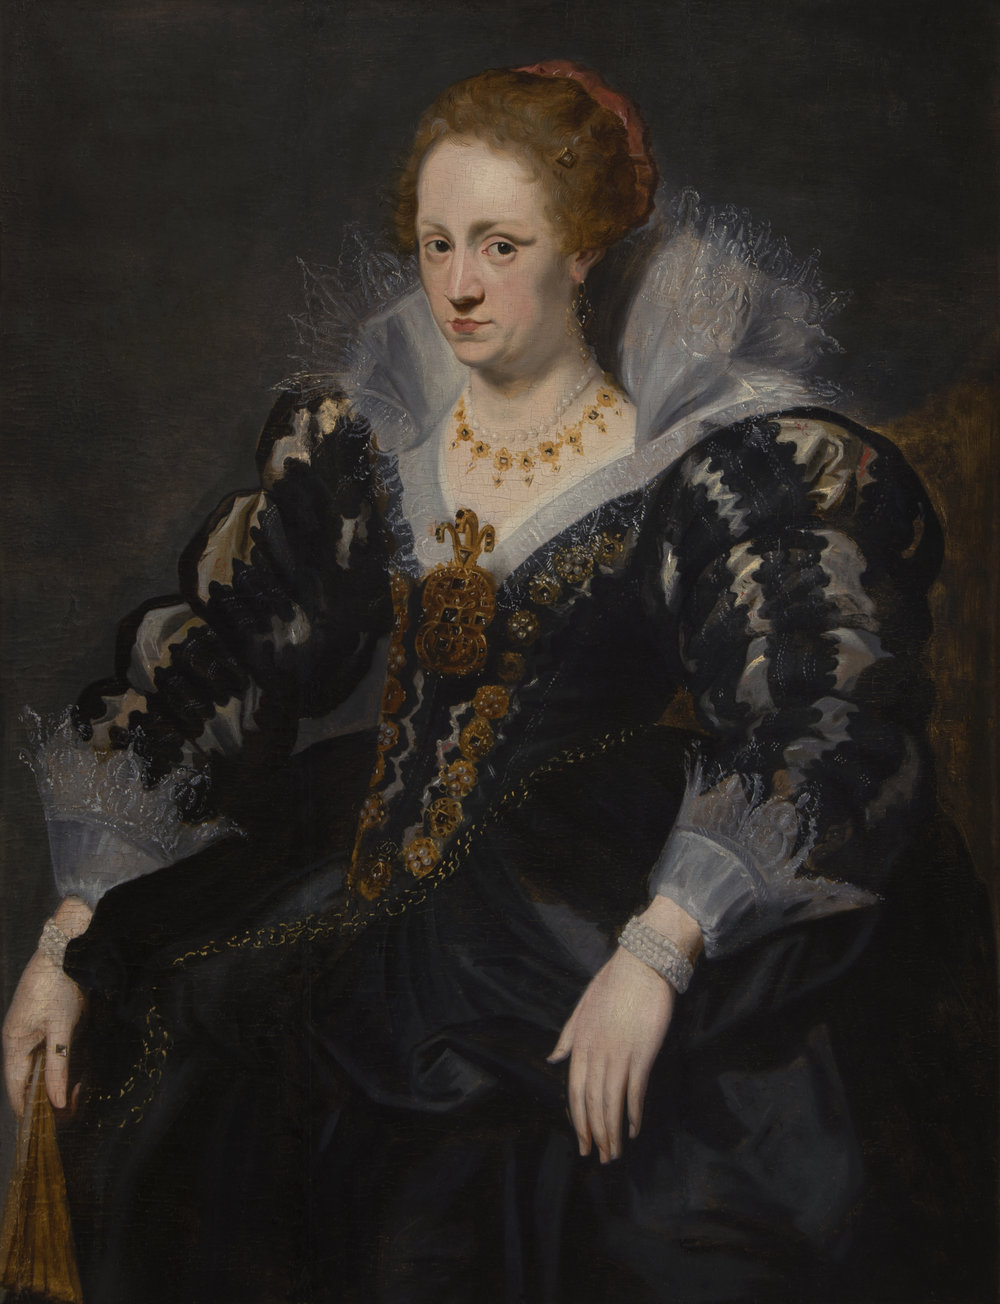 Van_Dyck_Portrait_of_a_Lady_II.jpg